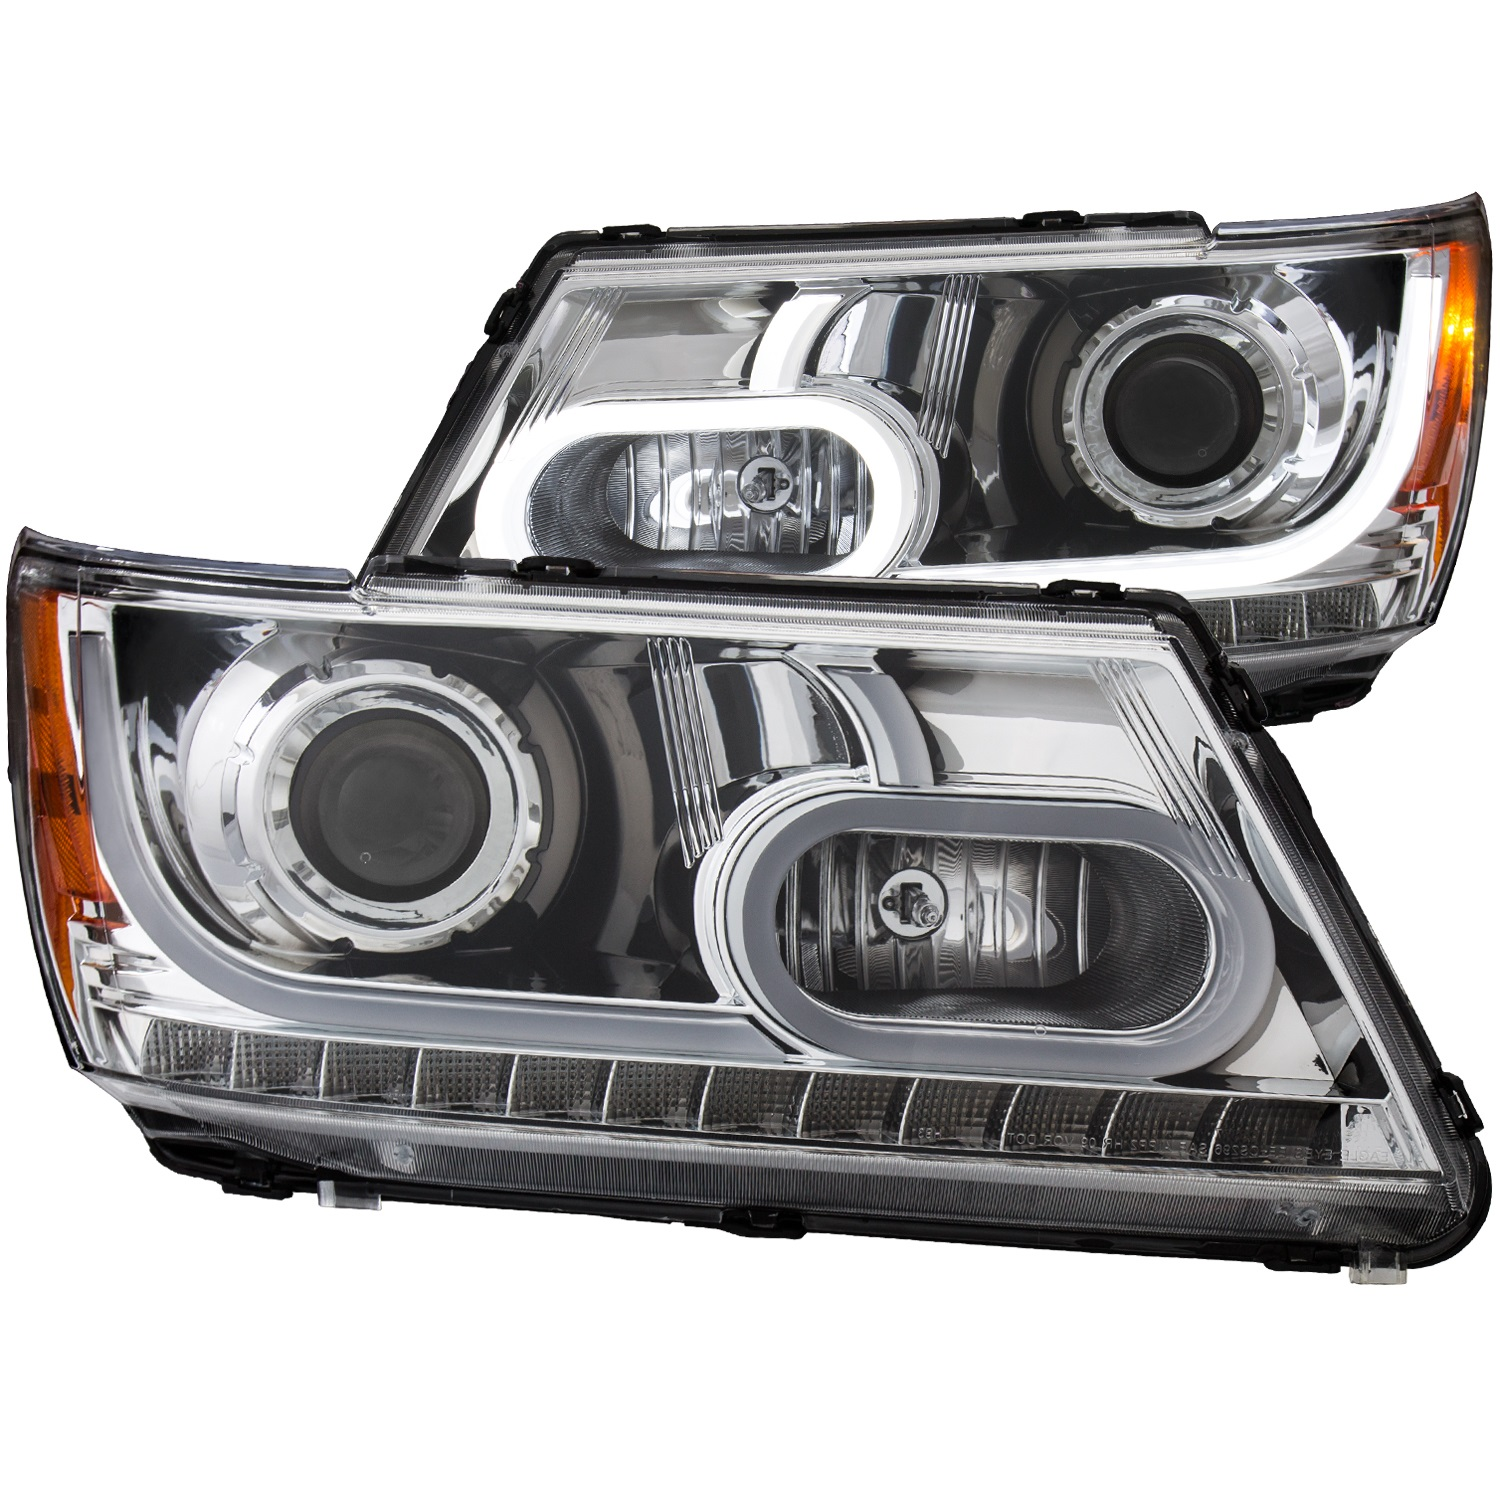 Anzo USA 111335 Projector Headlight Set Fits 09-14 Journey